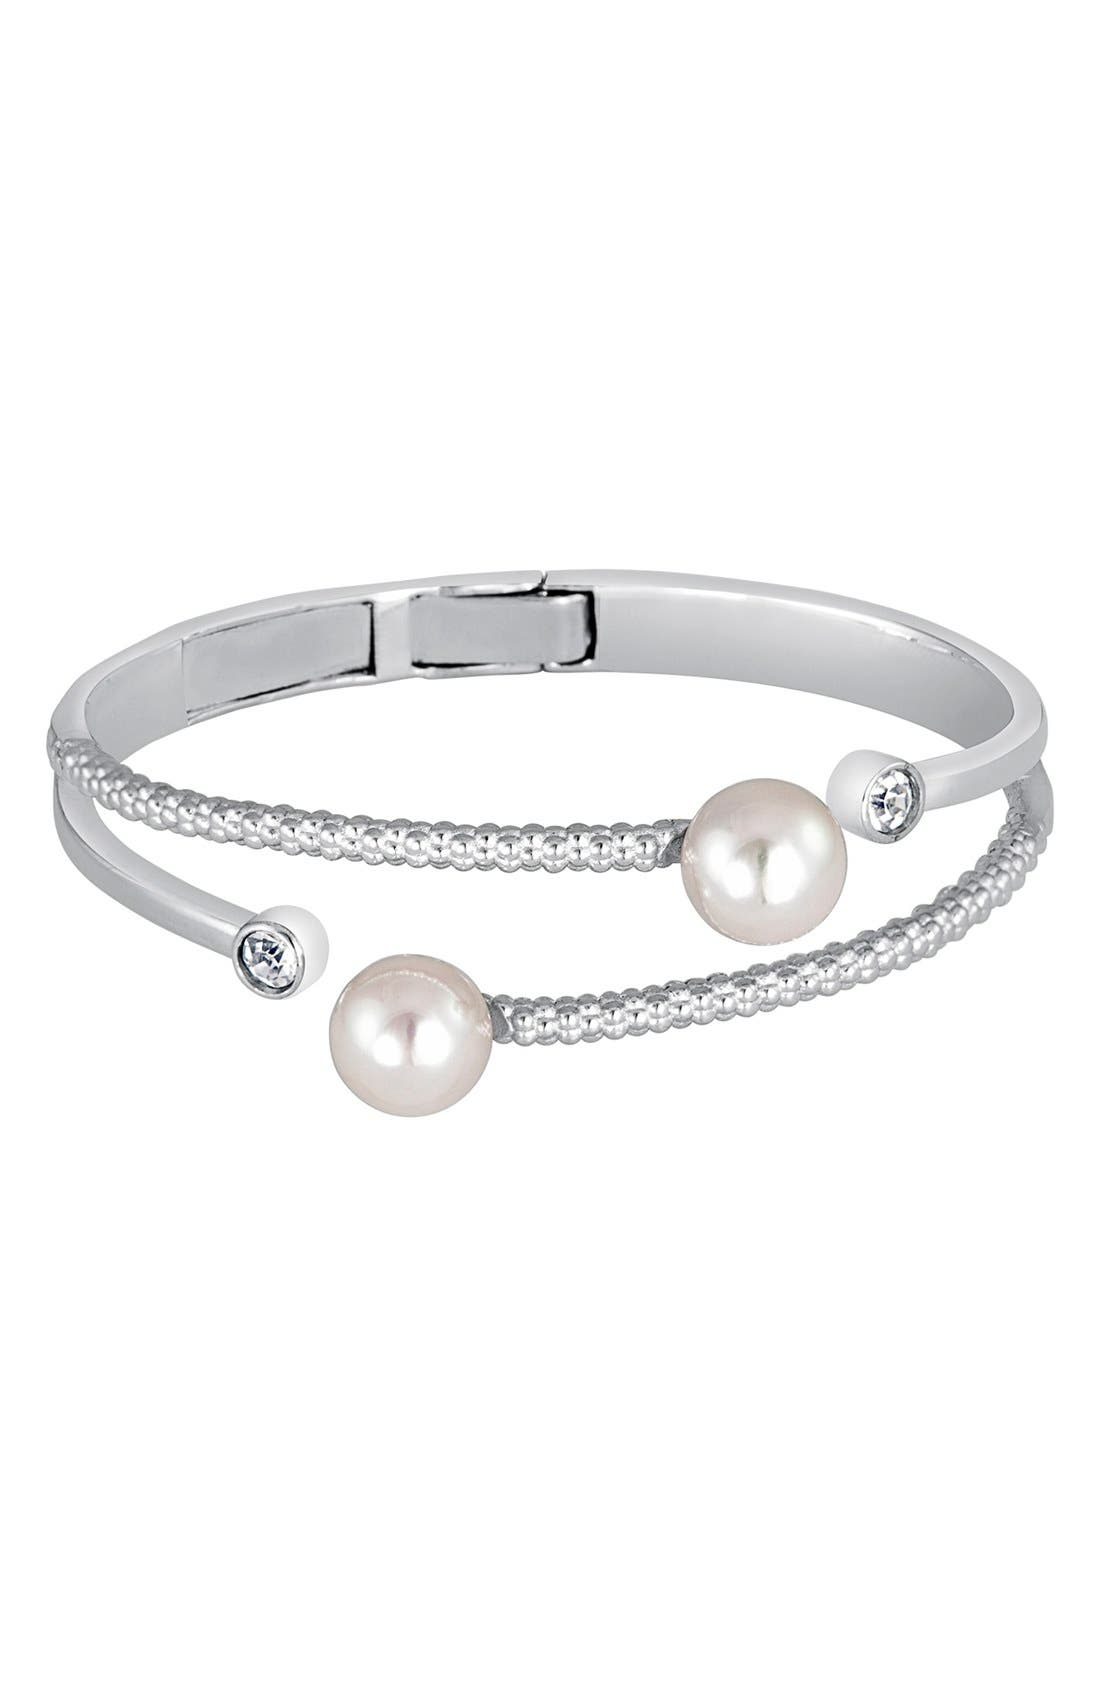 10mm Simulated Round Pearl Cuff,                         Main,                         color, WHITE